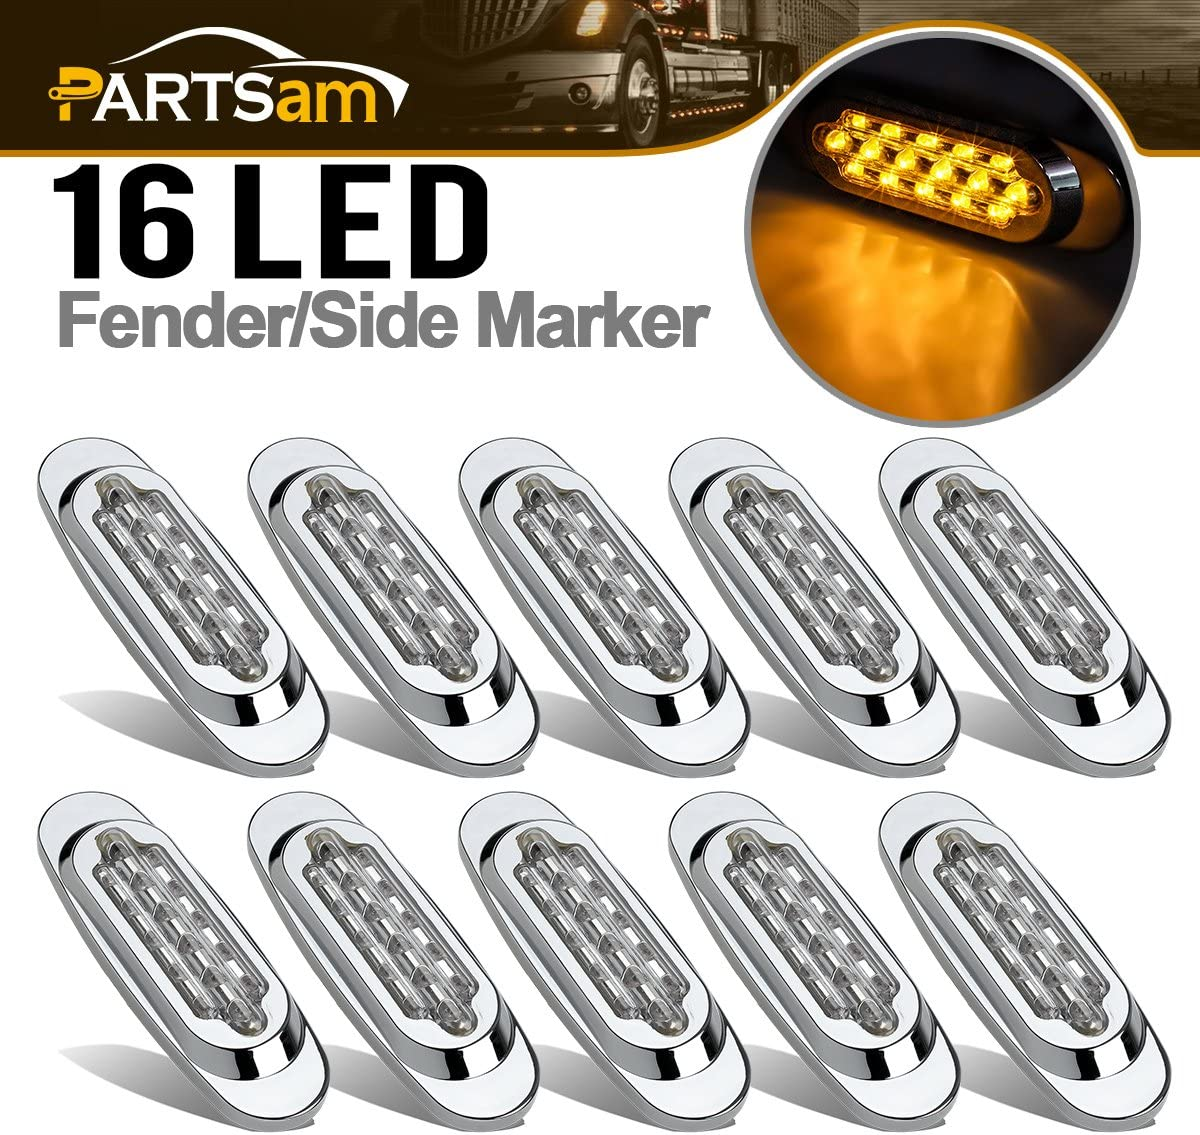 Partsam 10Pcs 6.5 Inch Clear Lens Max 60% OFF Led Amber Marker Sales of SALE items from new works Light Oval 16